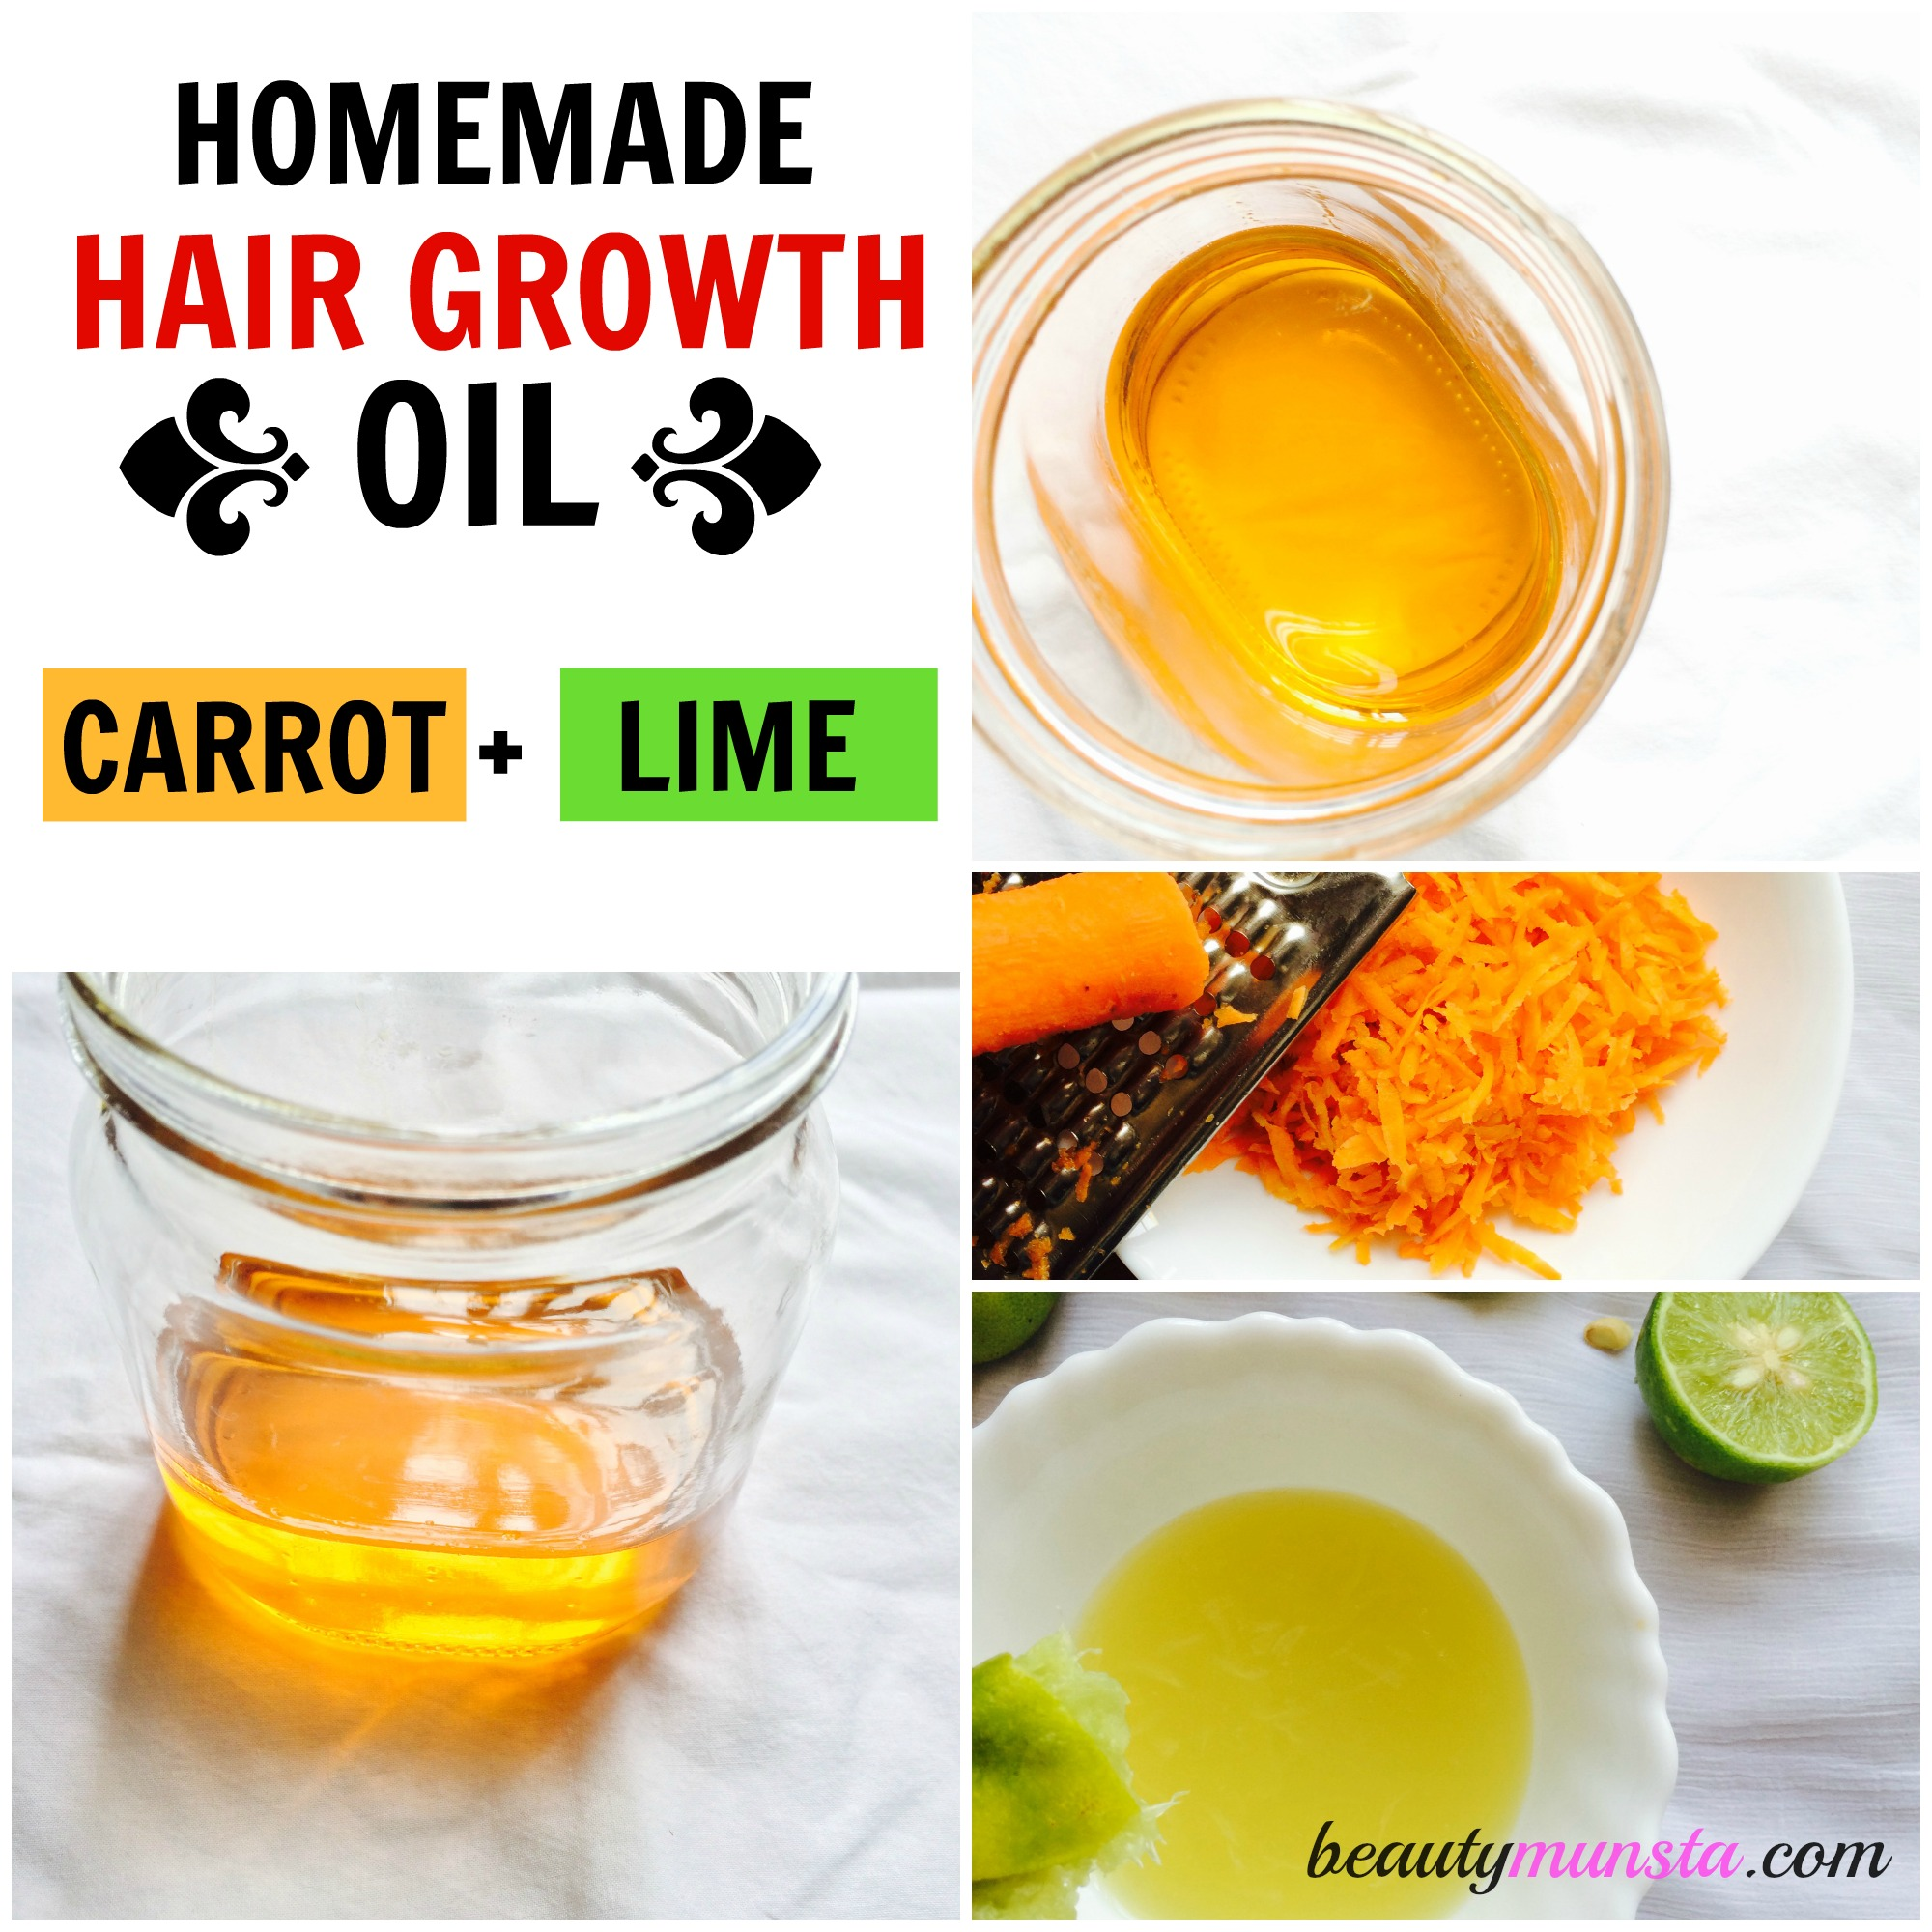 Carrot Amp Lime Homemade Hair Oil Recipe For Hair Growth